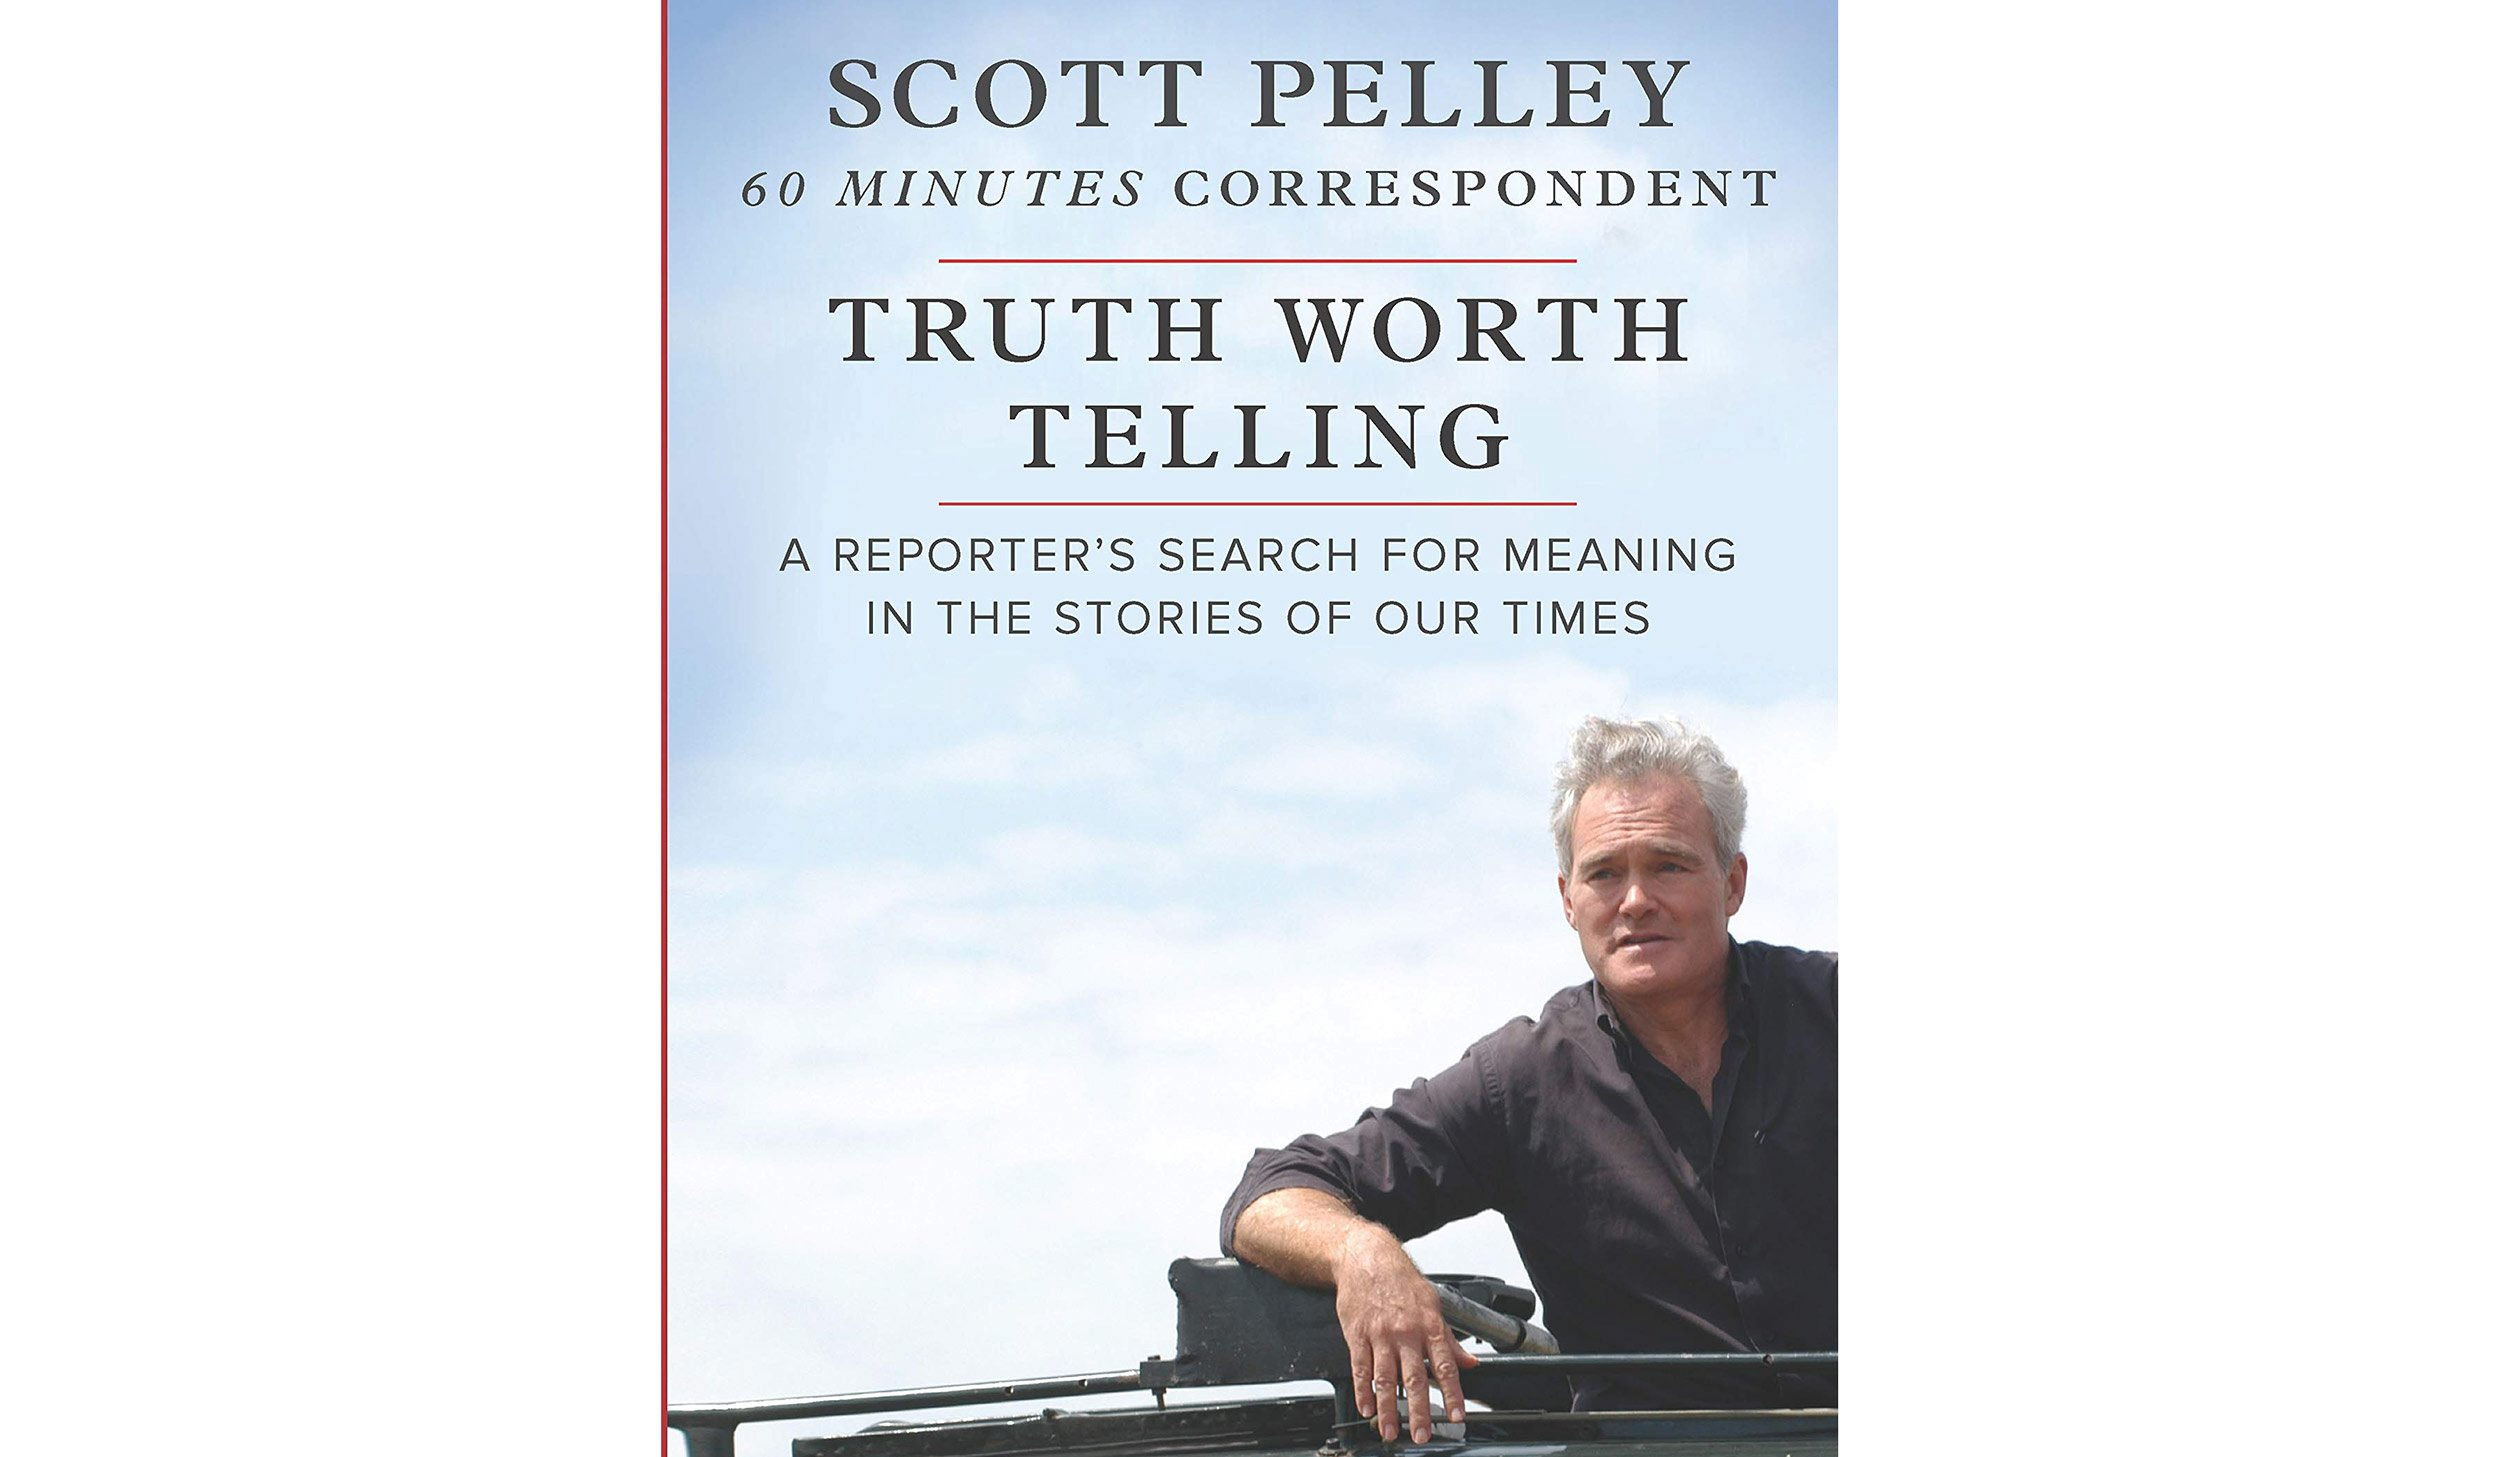 BOOK REVIEW: 'Truth Worth Telling' by Scott Pelley